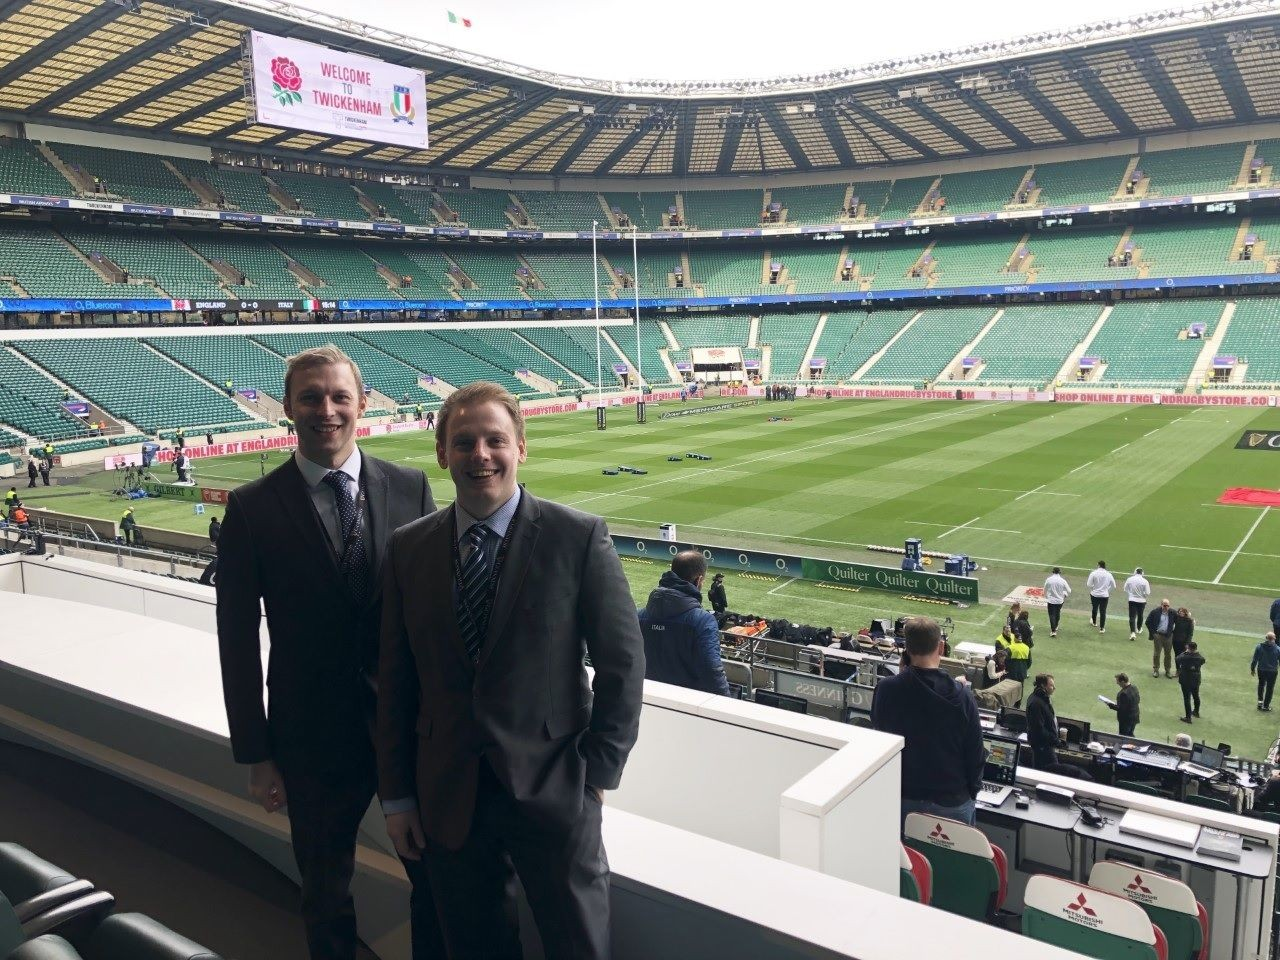 Surrey Patron Wins 6 Nations Tickets and Hospitality at HQ